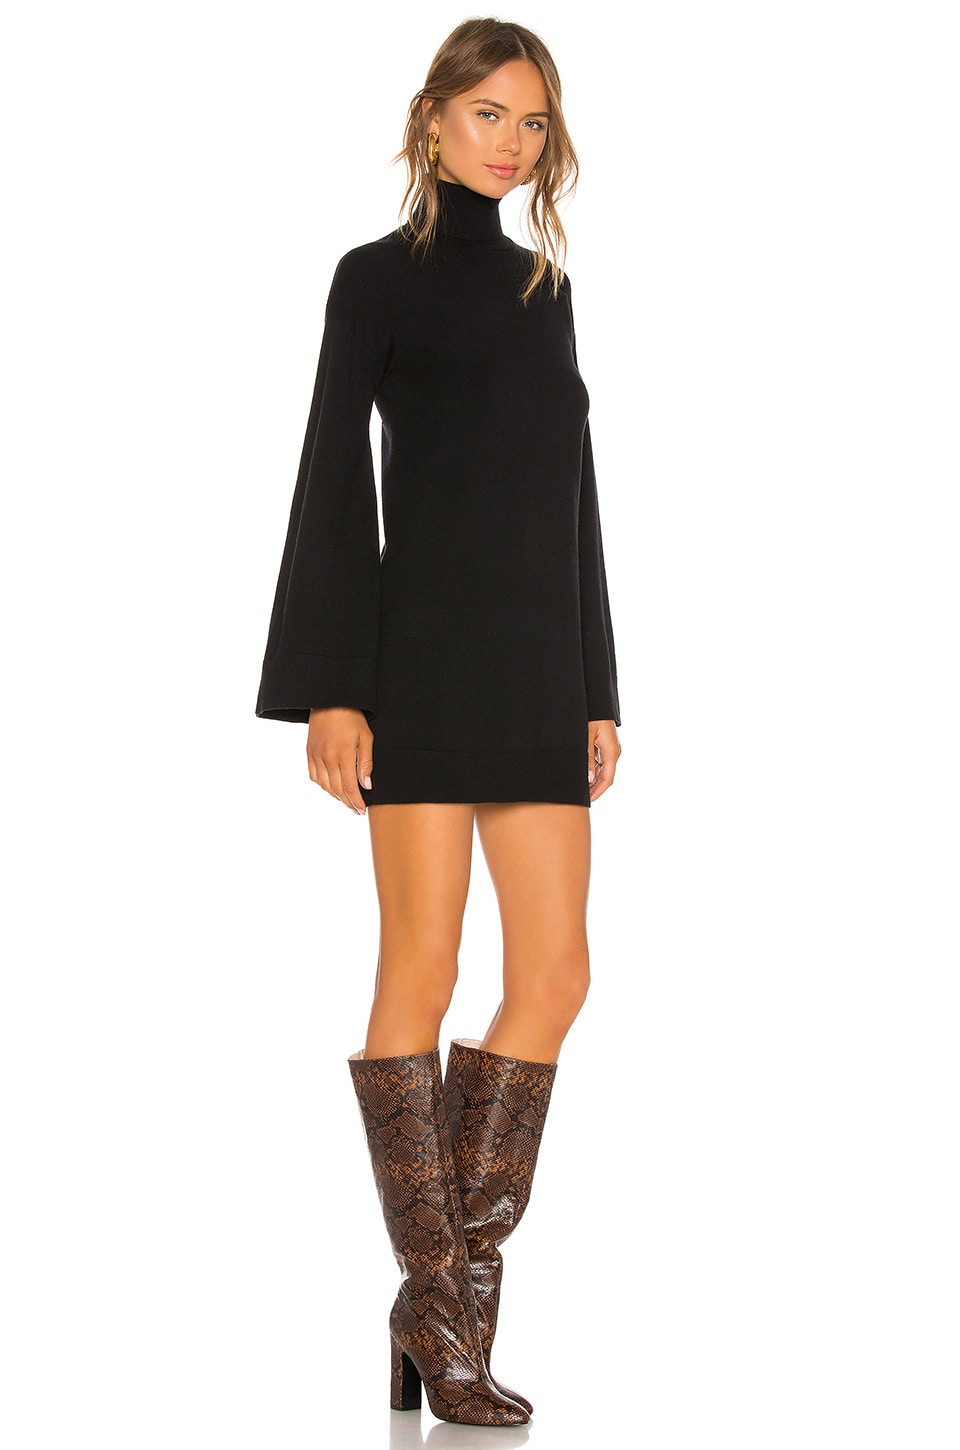 Fallon Sweater Dress, view 2, click to view large image.